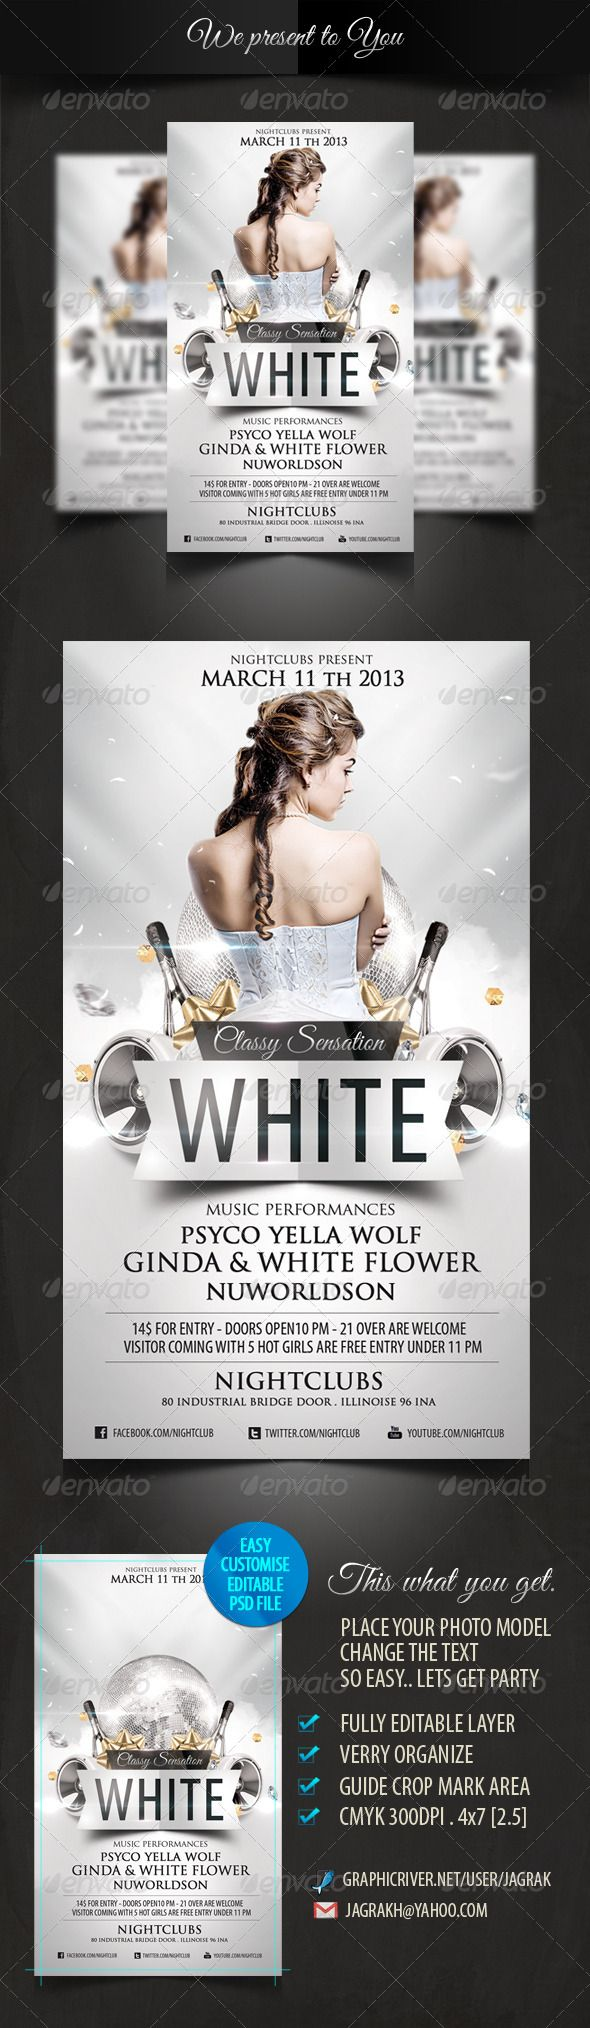 white classy sensation party flyer template flyer template white classy sensation party flyer template graphicriver item for